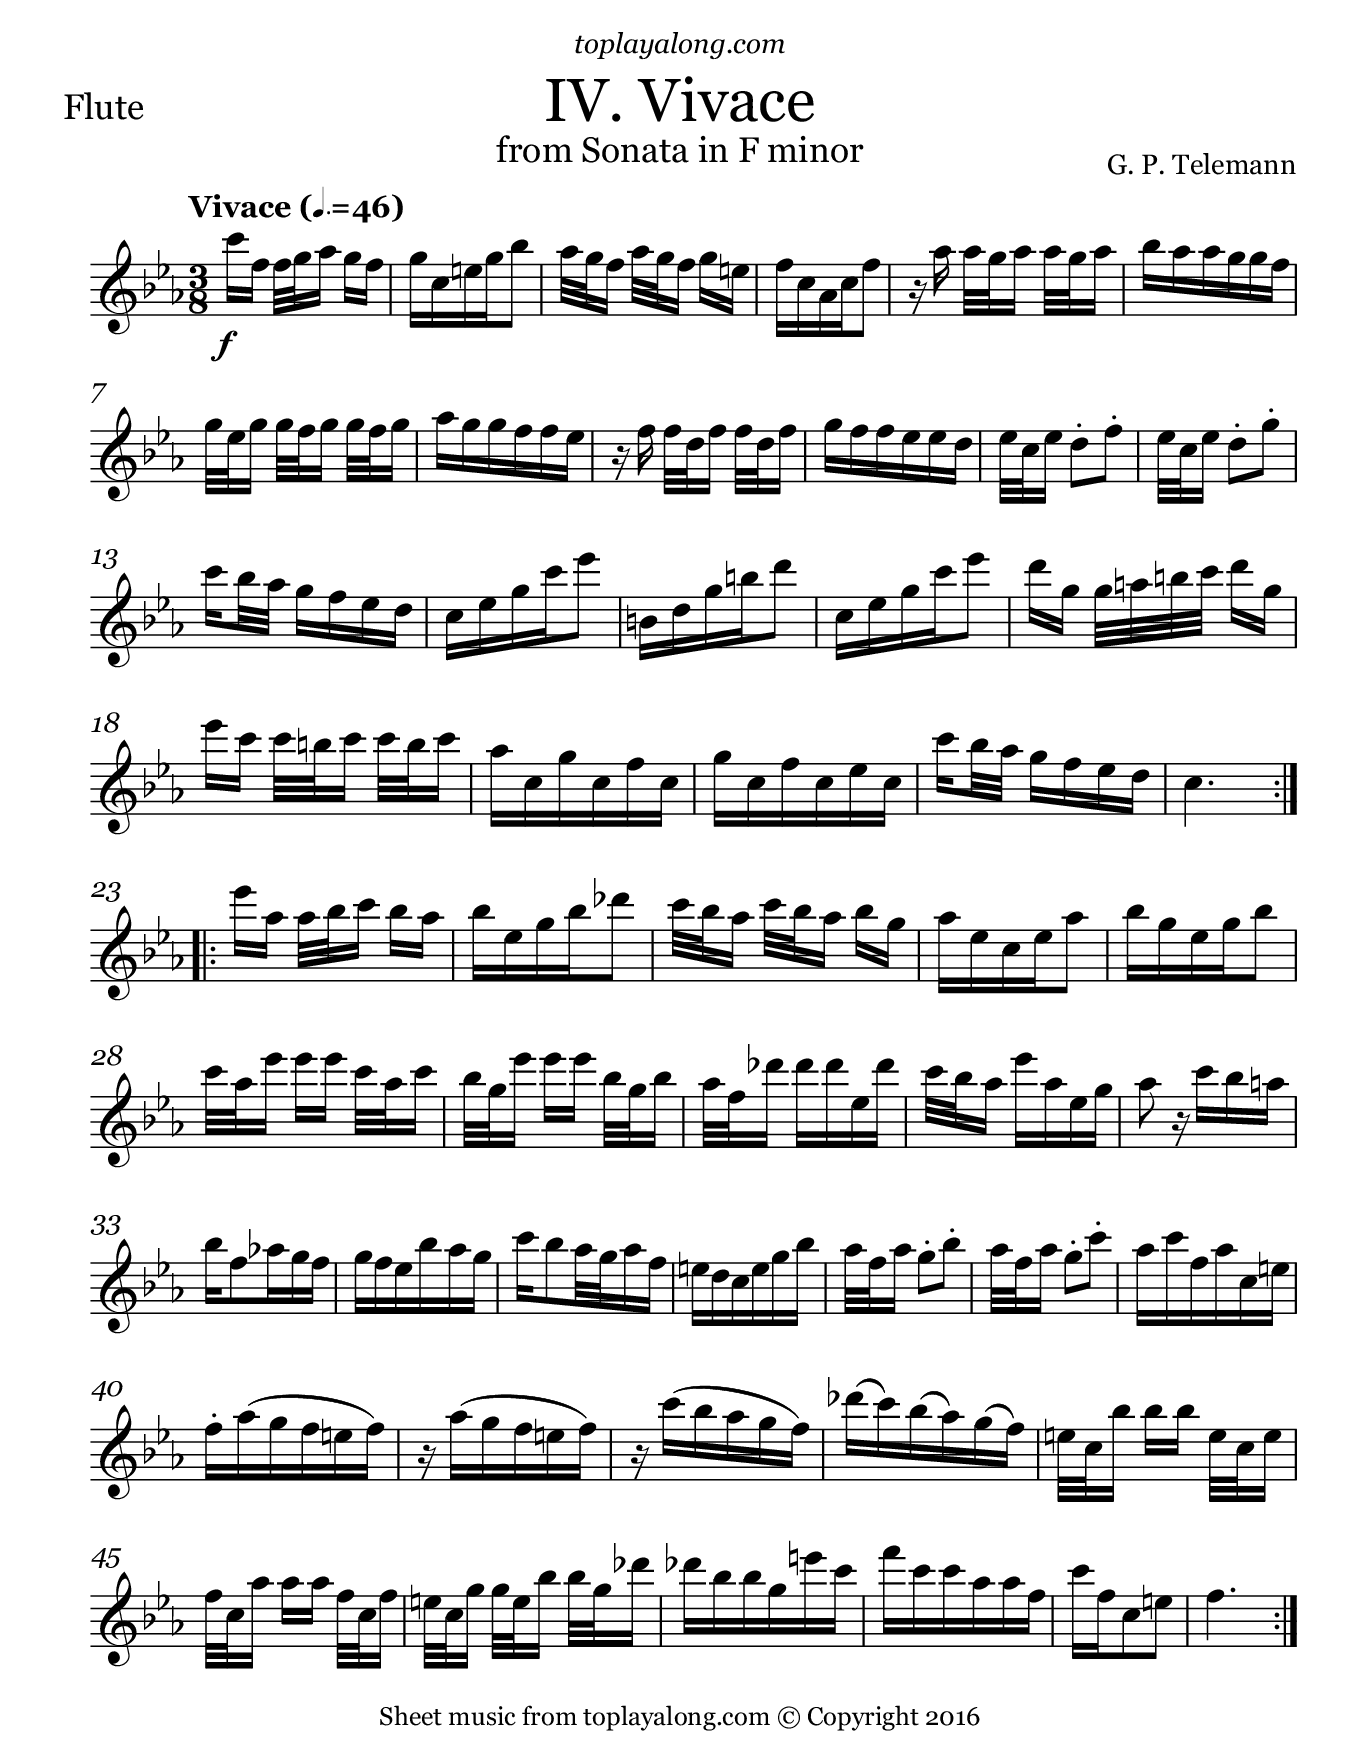 Sonata in F minor (IV. Vivace) by Telemann. Sheet music for Flute, page 1.